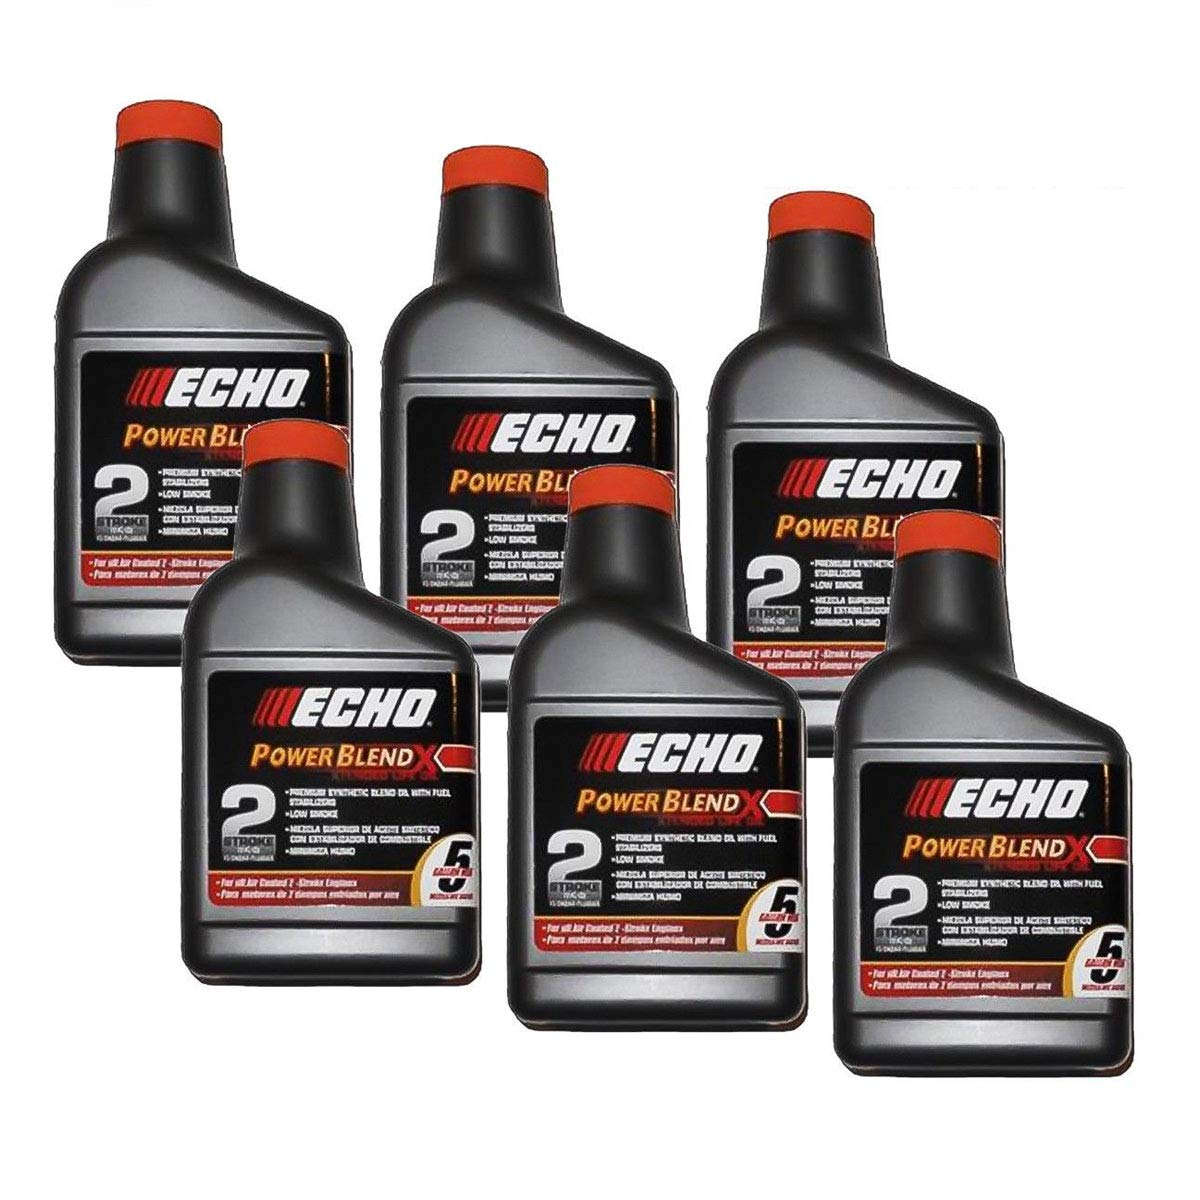 Genuine Echo 6 Pack Oil 12.8 oz Bottles 2 Cycle Mix for 5 Gallon Power Blend / 6450005 by Echo Power Equipment